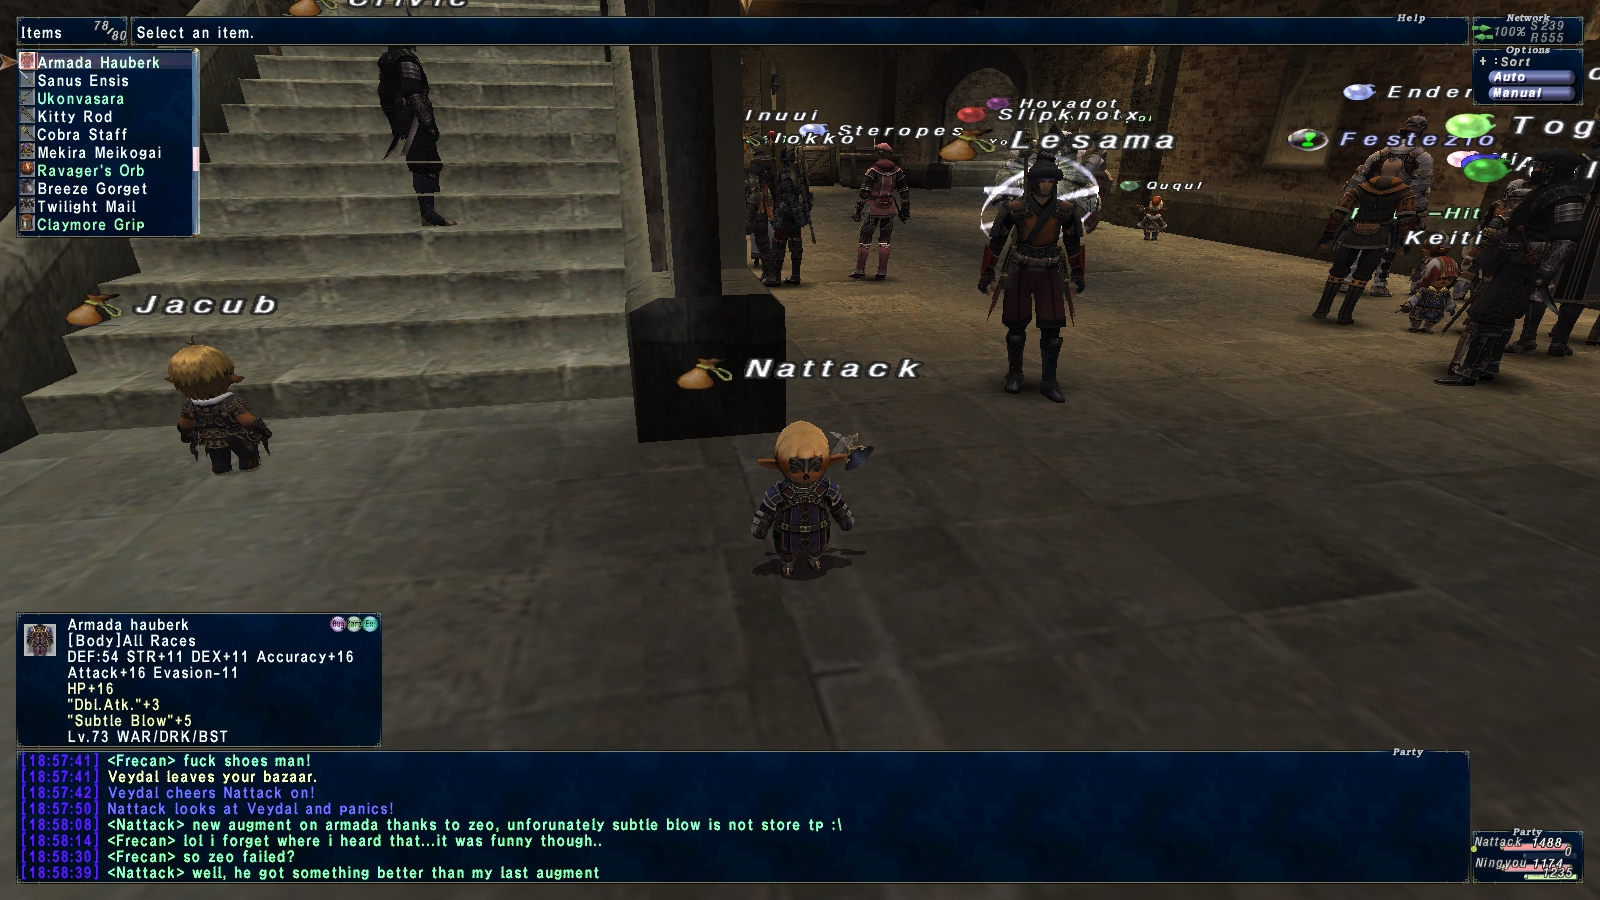 nattack ffxi augment with stone after shit your breaking ended posted whats augments nekodance overshooting wiki magic attack bonus decided skirmish show augmented items staff post went today lucky